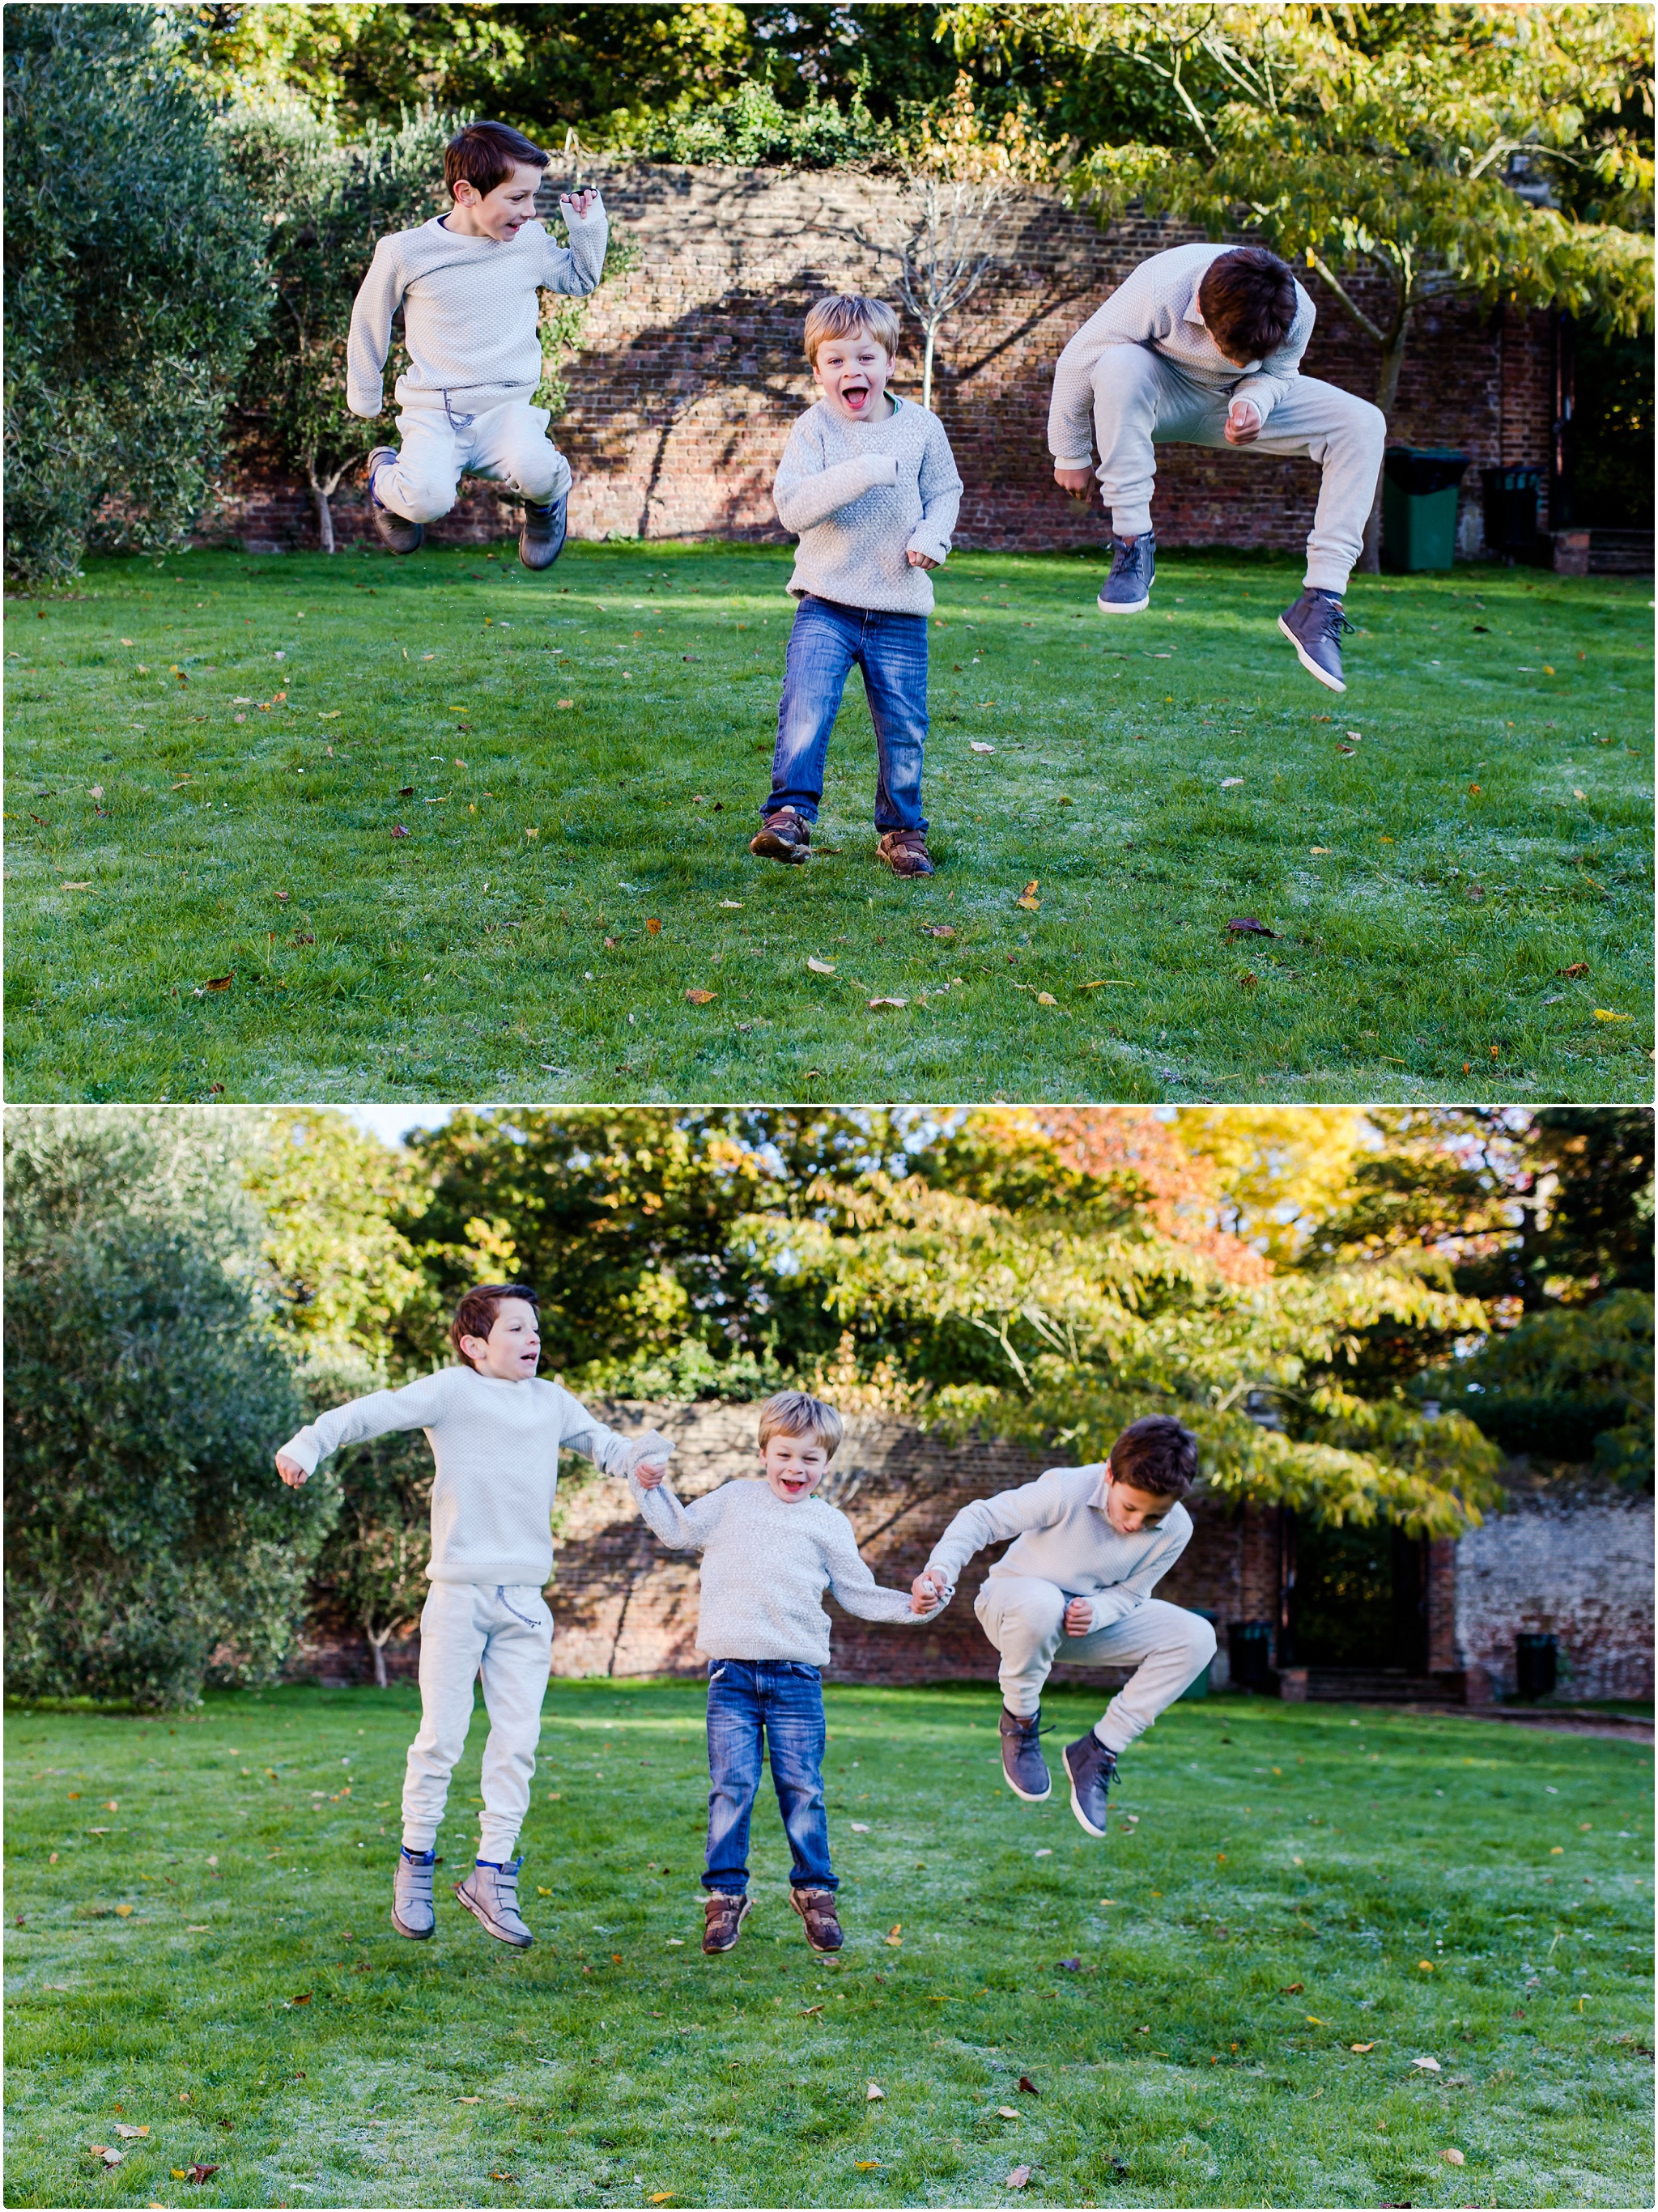 Boys jumping - family photography